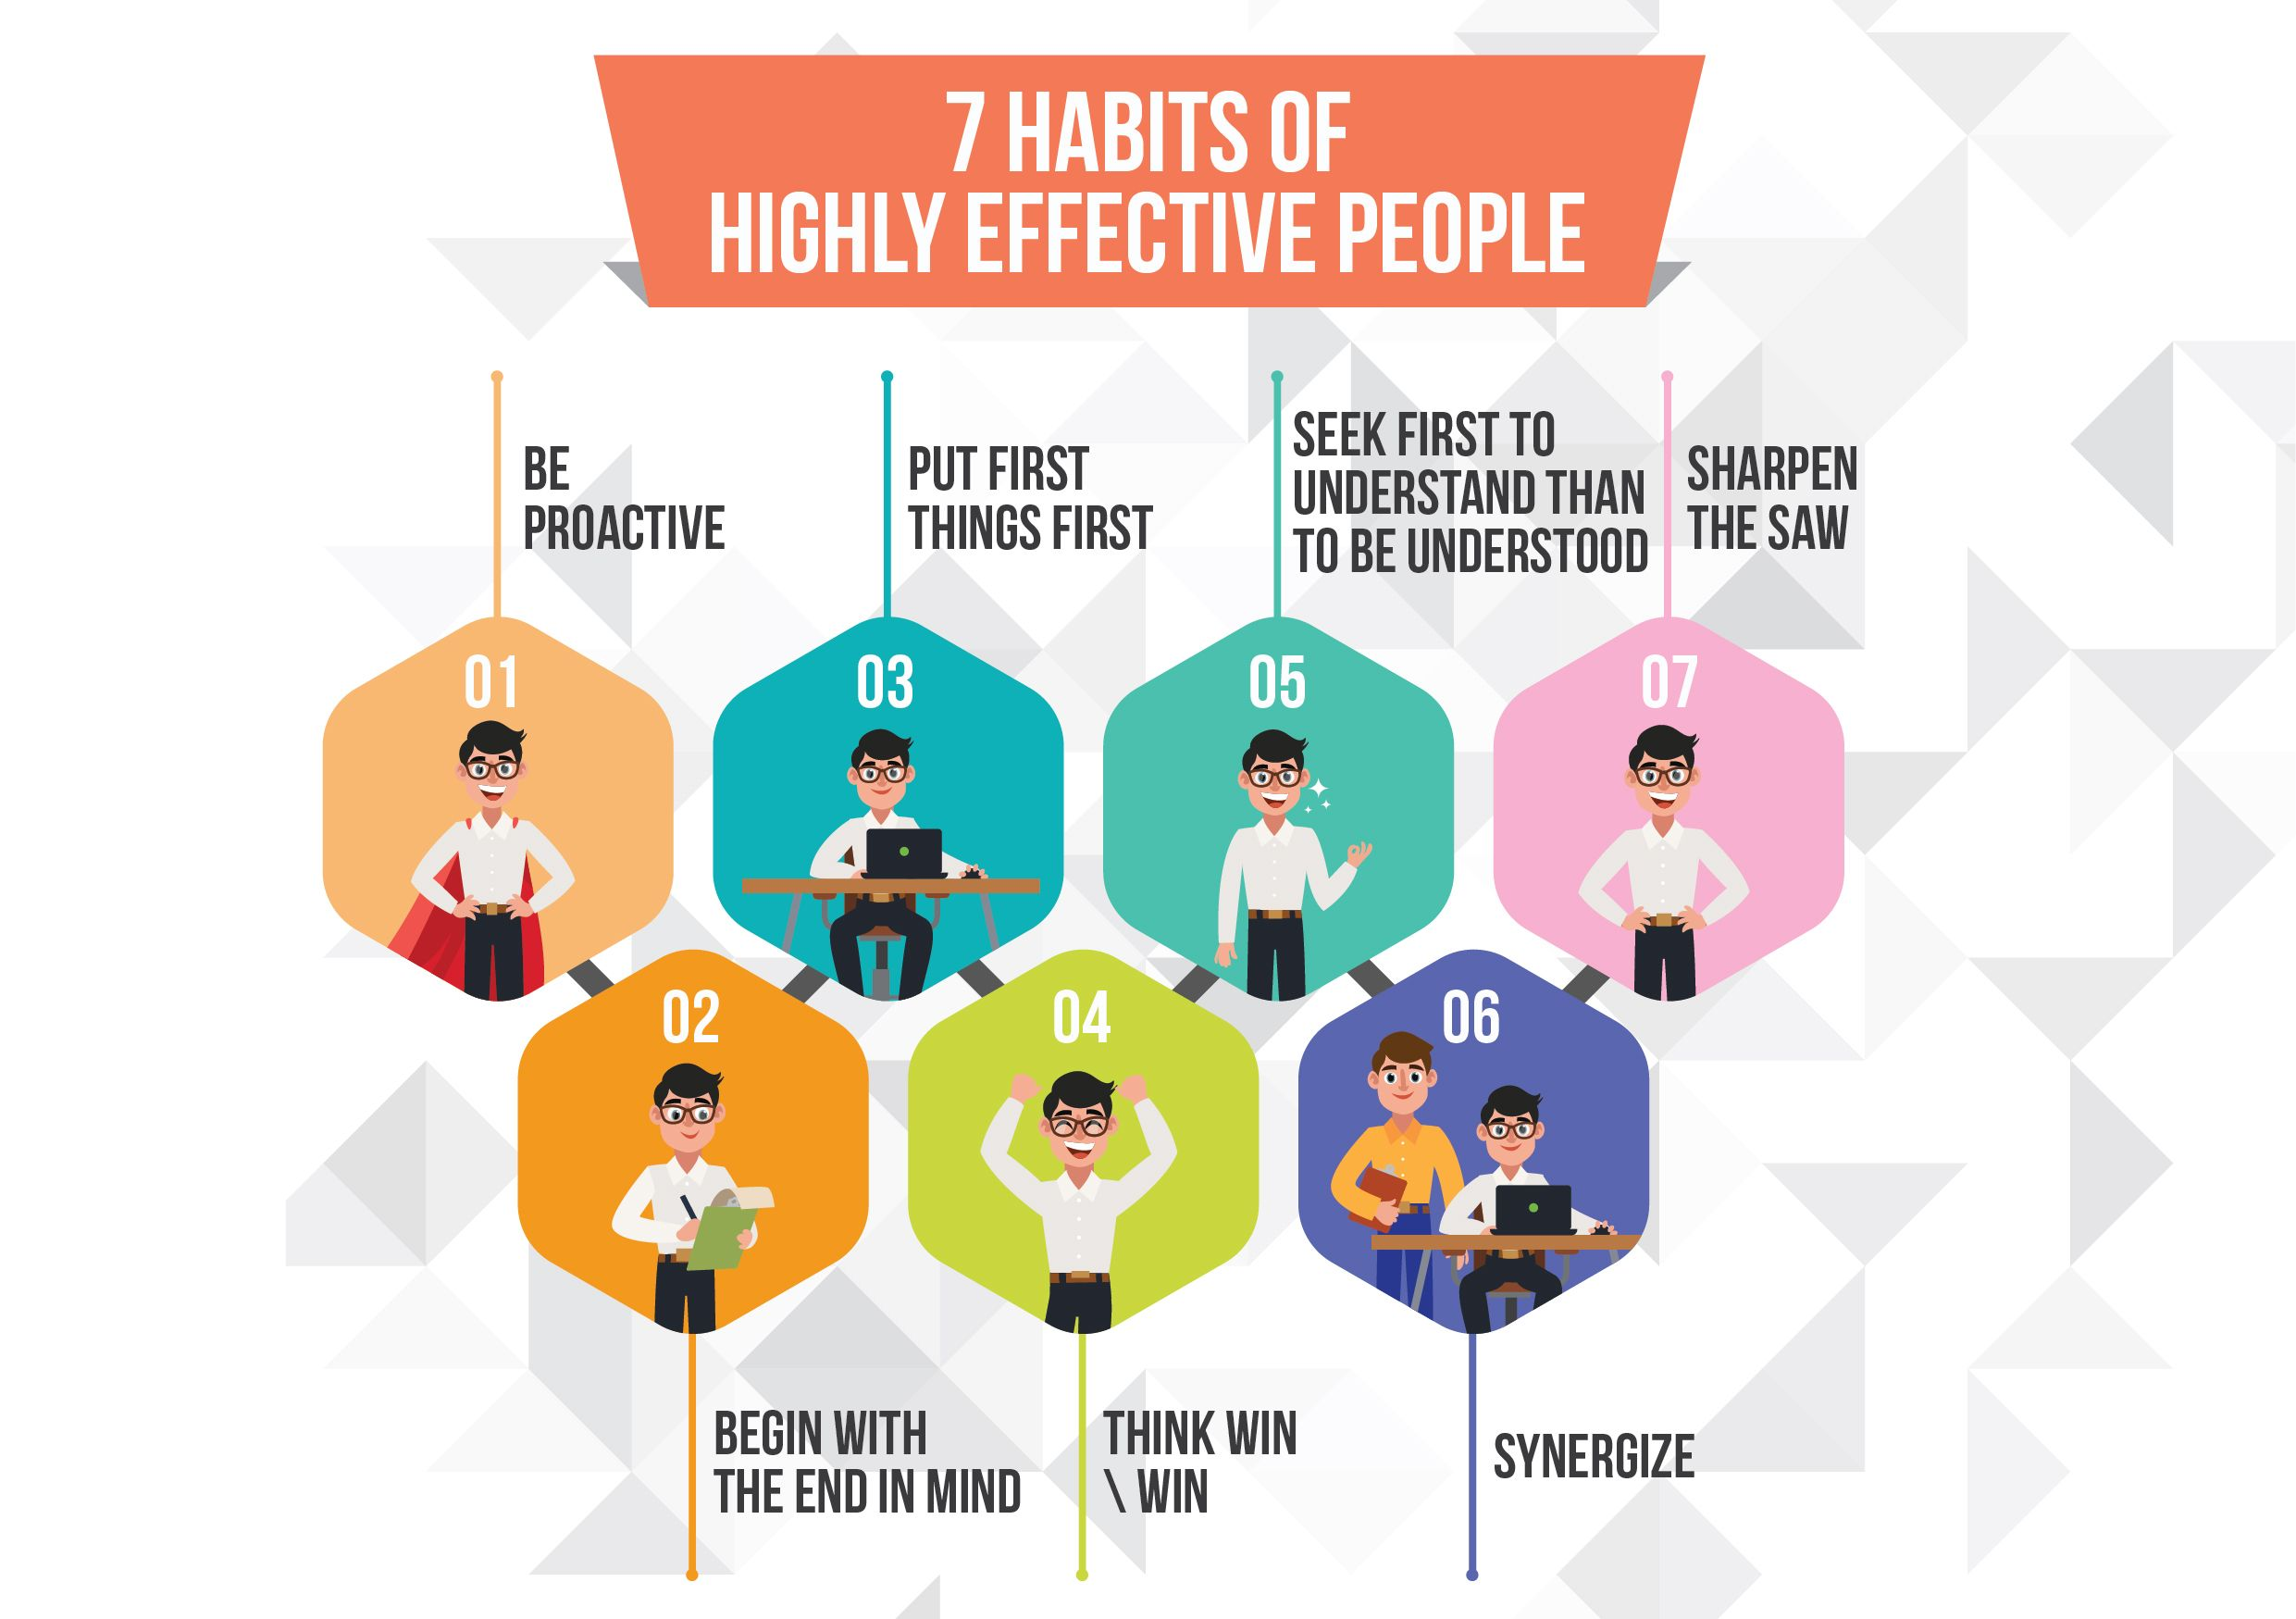 7 Habits Of Highly Effective People Summary Highly Effective